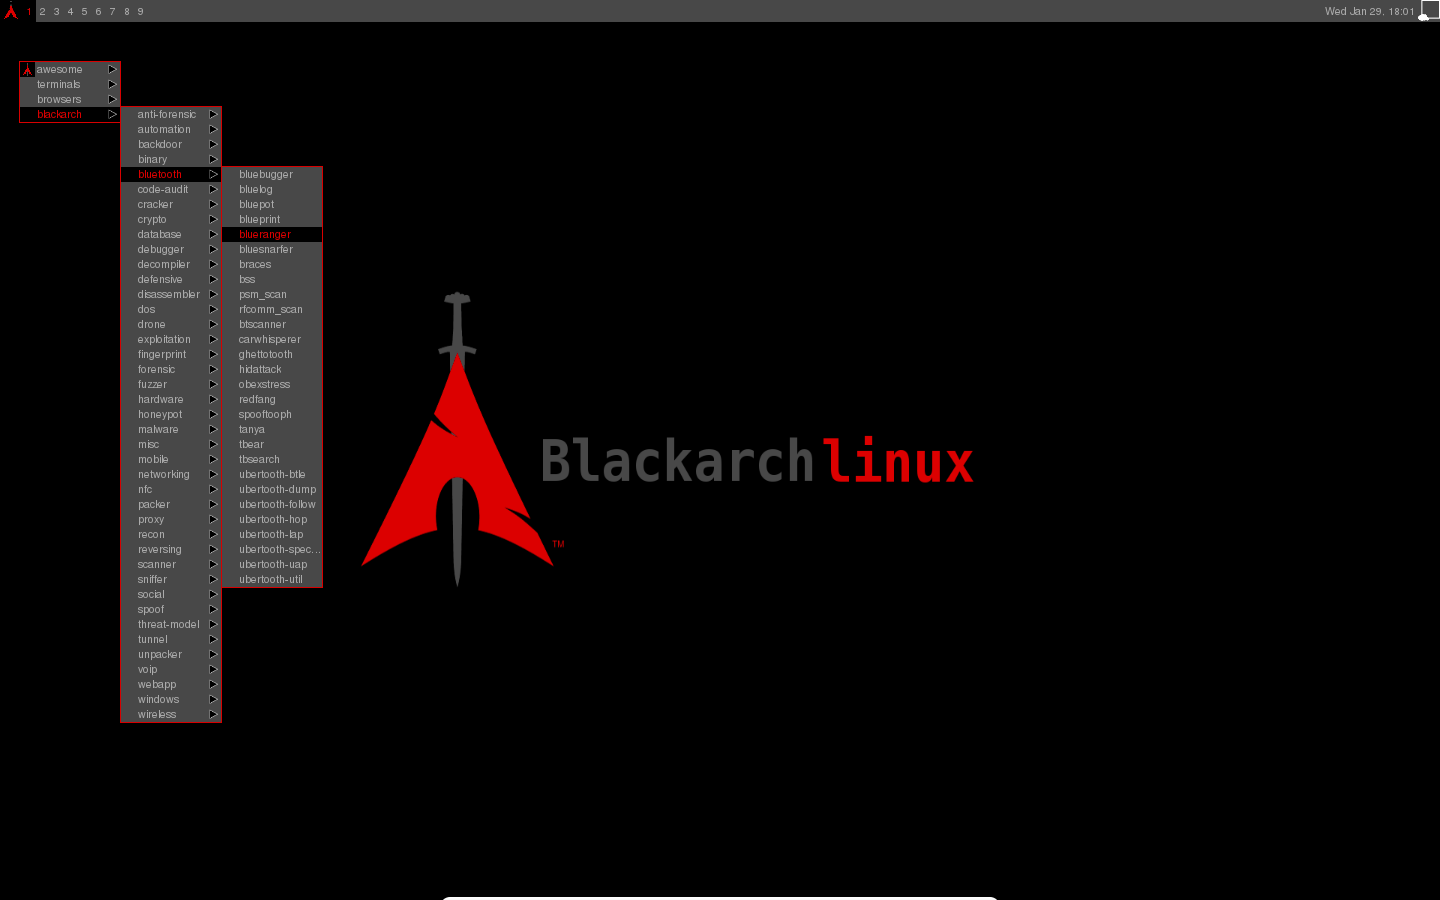 BlackArch Linux v2014 10 07 - Lightweight expansion to Arch Linux